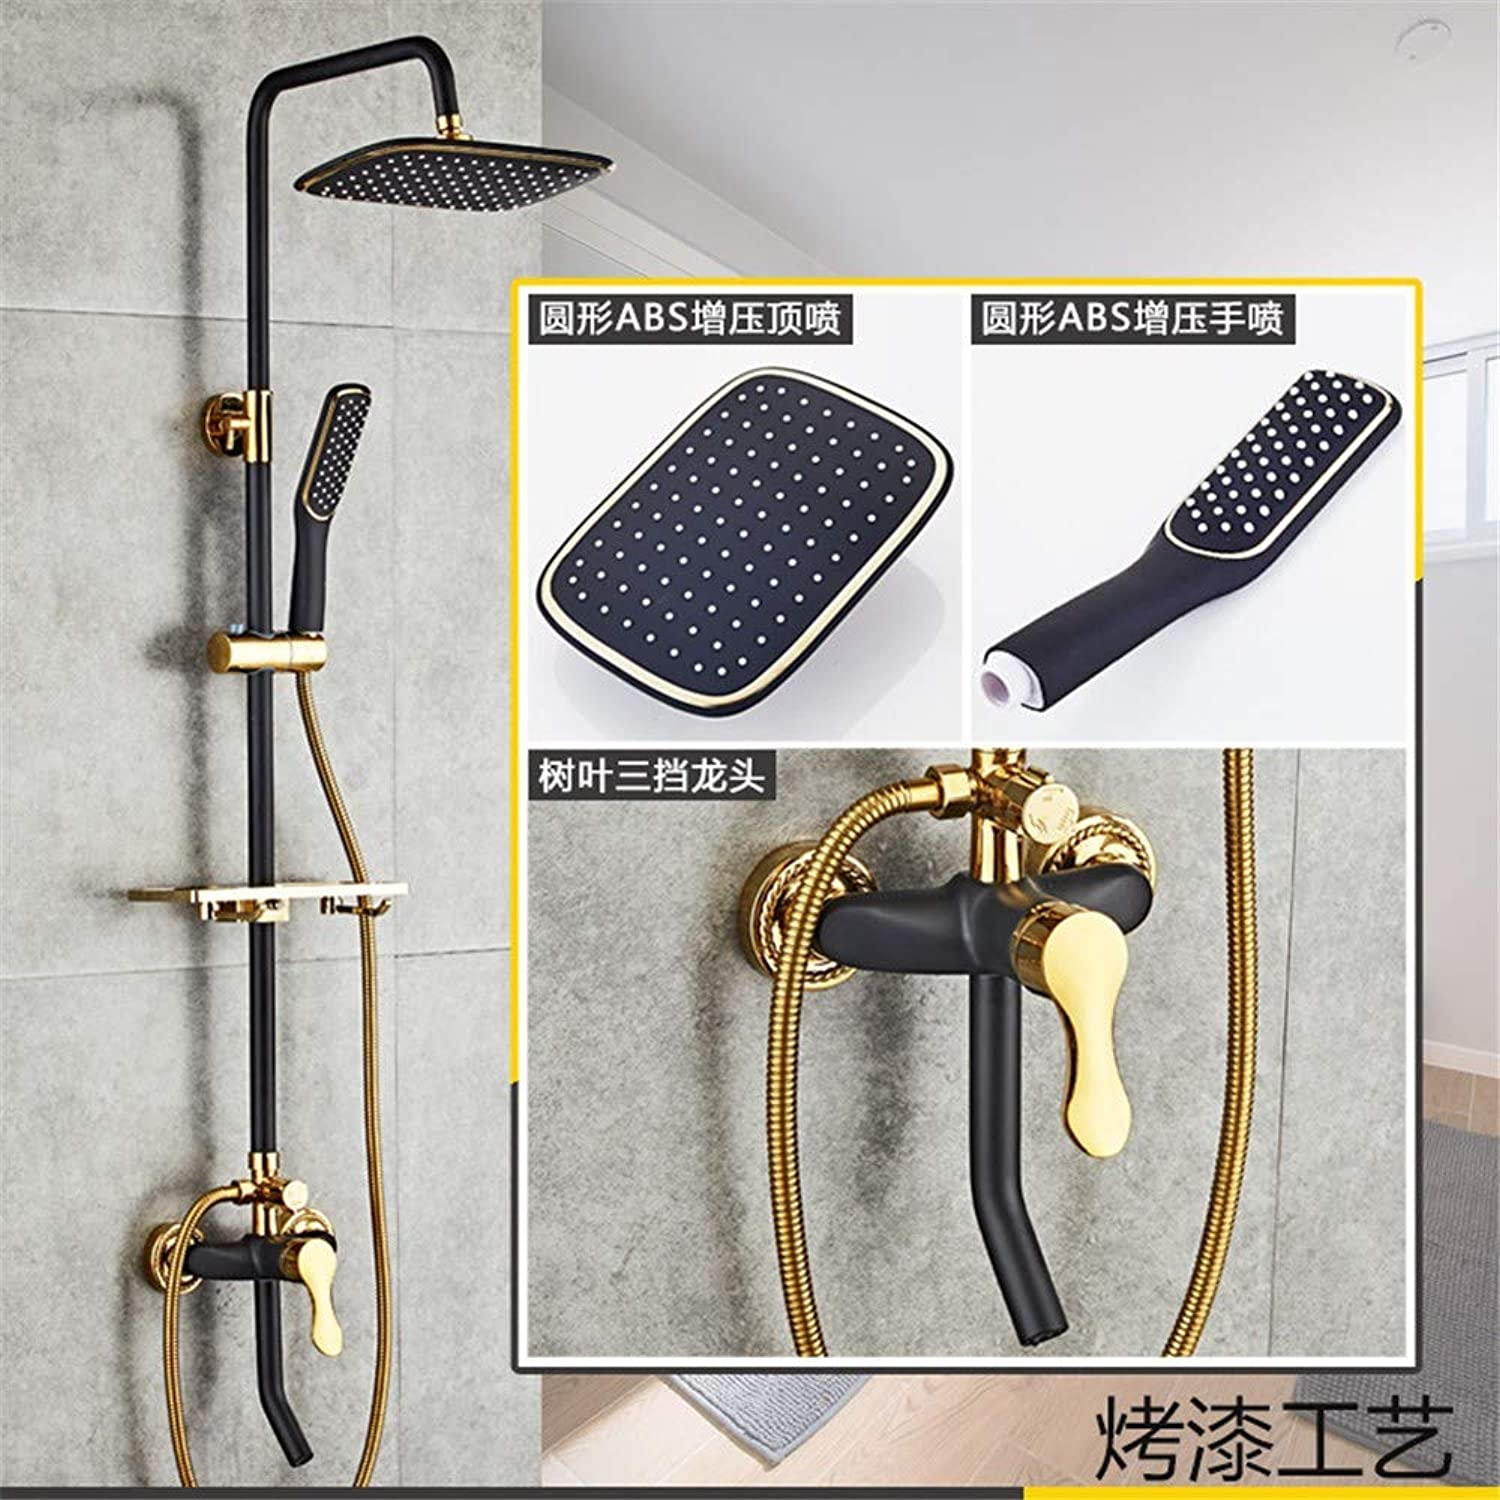 Amber zheng Shower Set Booster, Combination 1